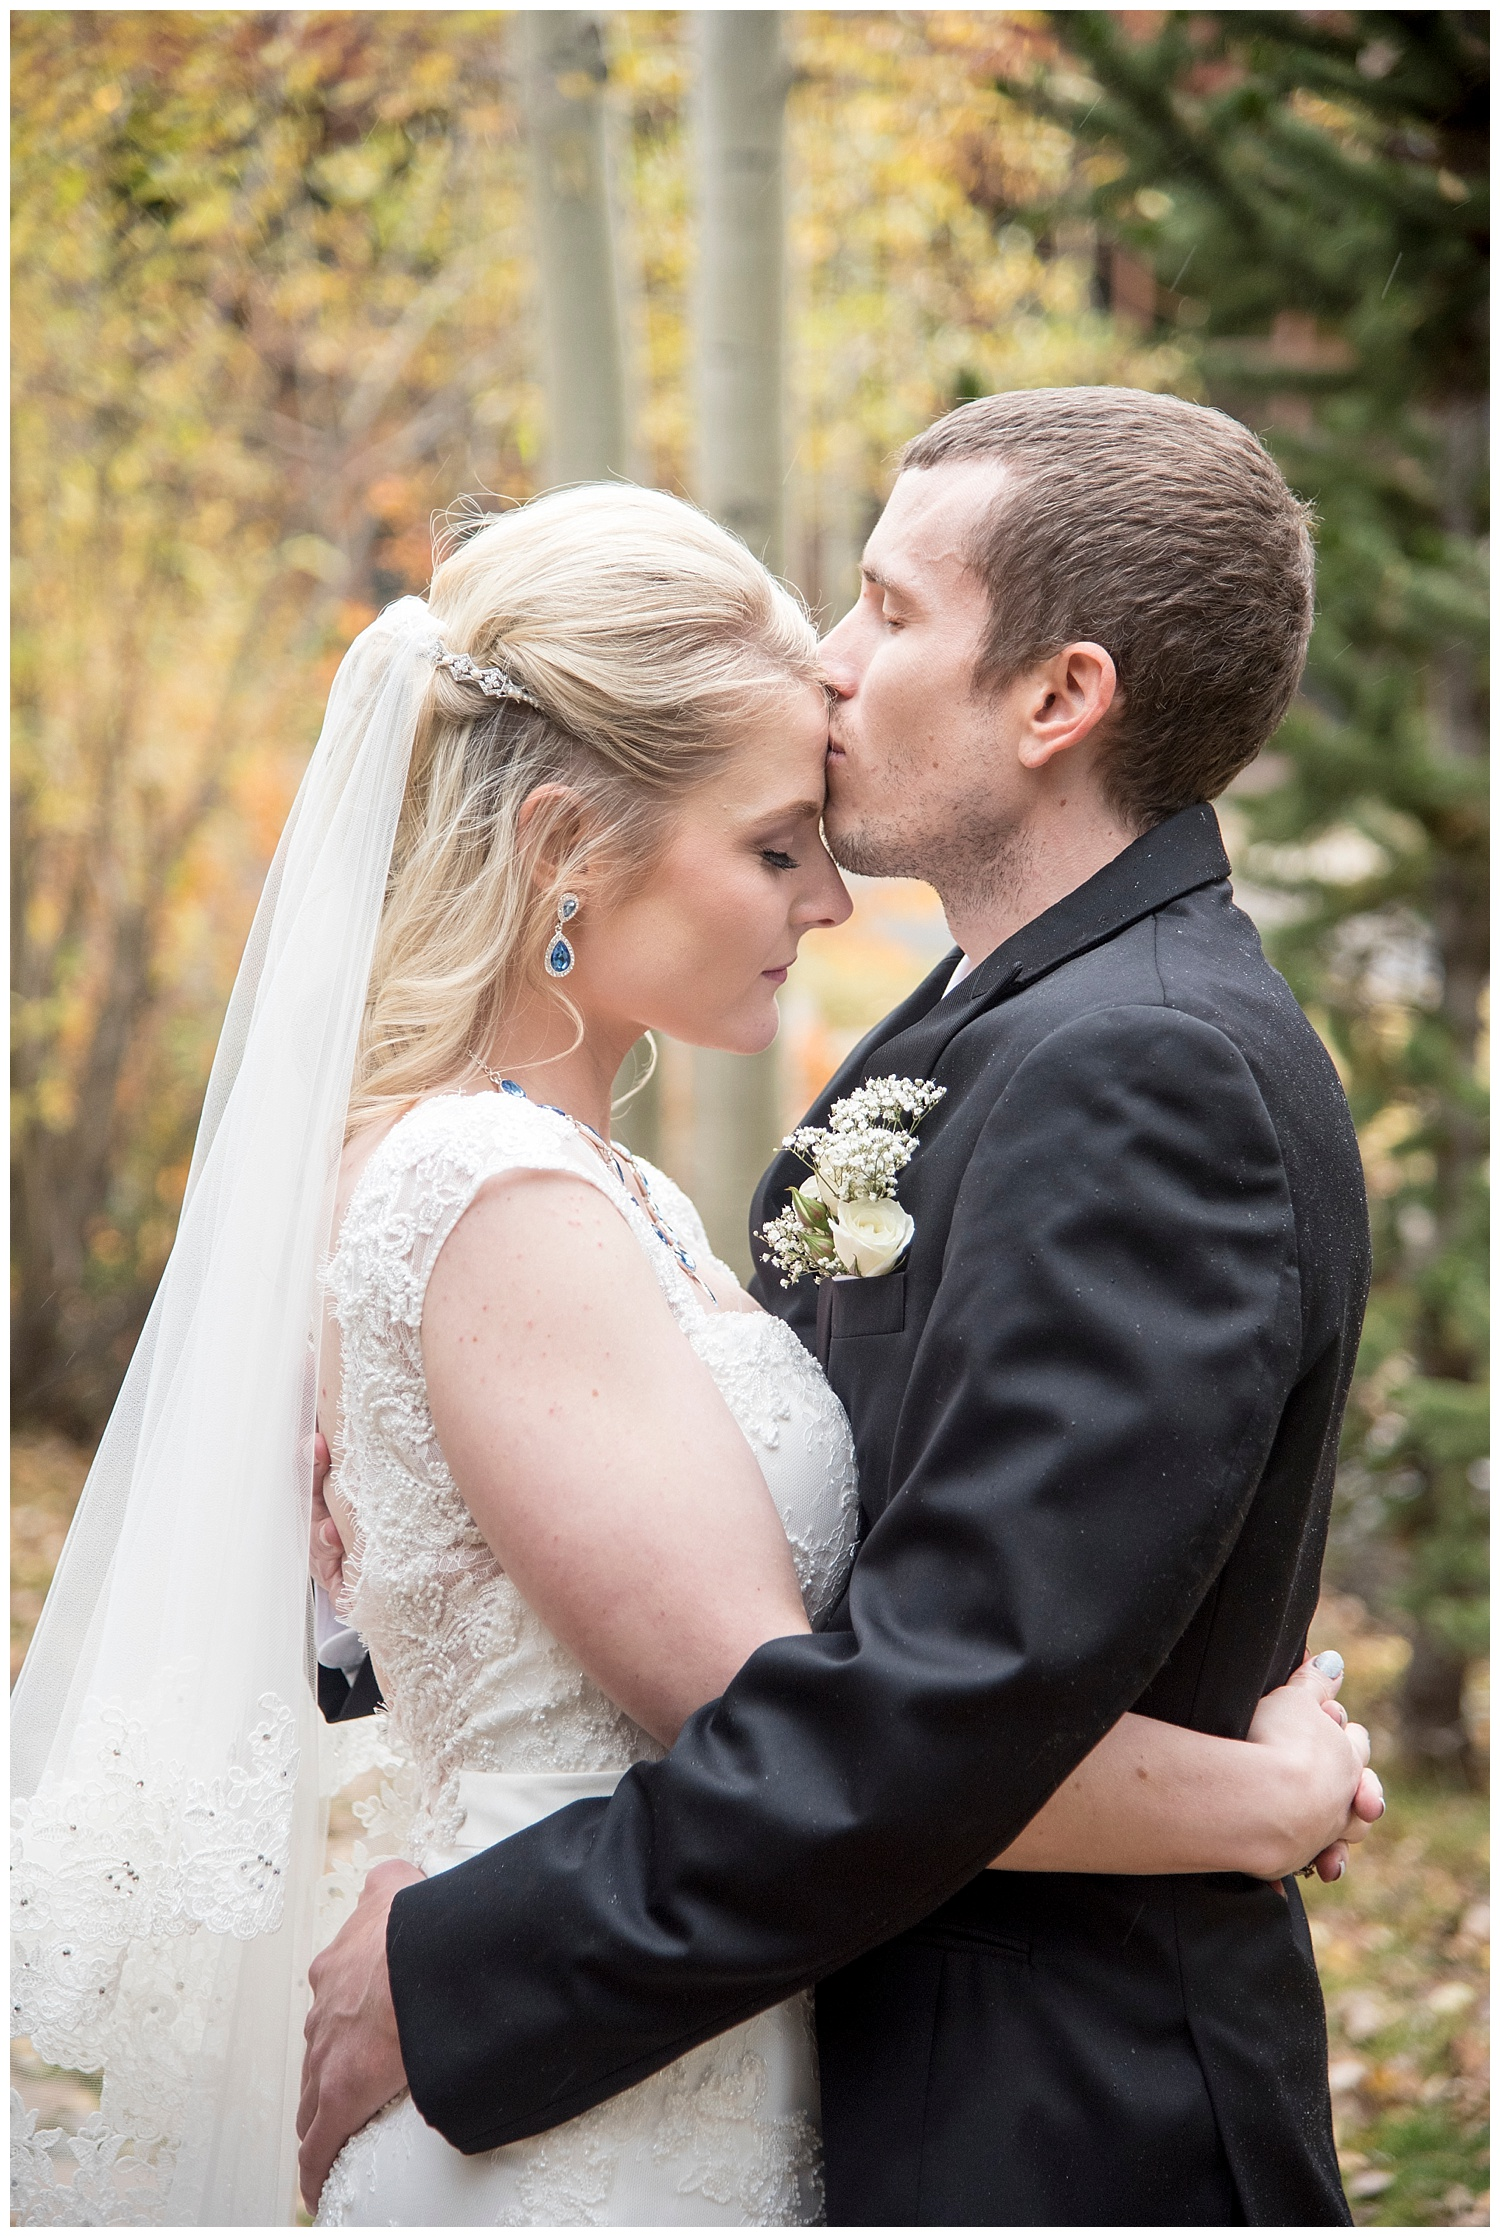 Groom Kissing Bride on Forehead | Chris & Destiny's Destination Wedding | Breckenridge Wedding Photographer | Colorado Farm Wedding Photographer | Apollo Fields Wedding Photojournalism